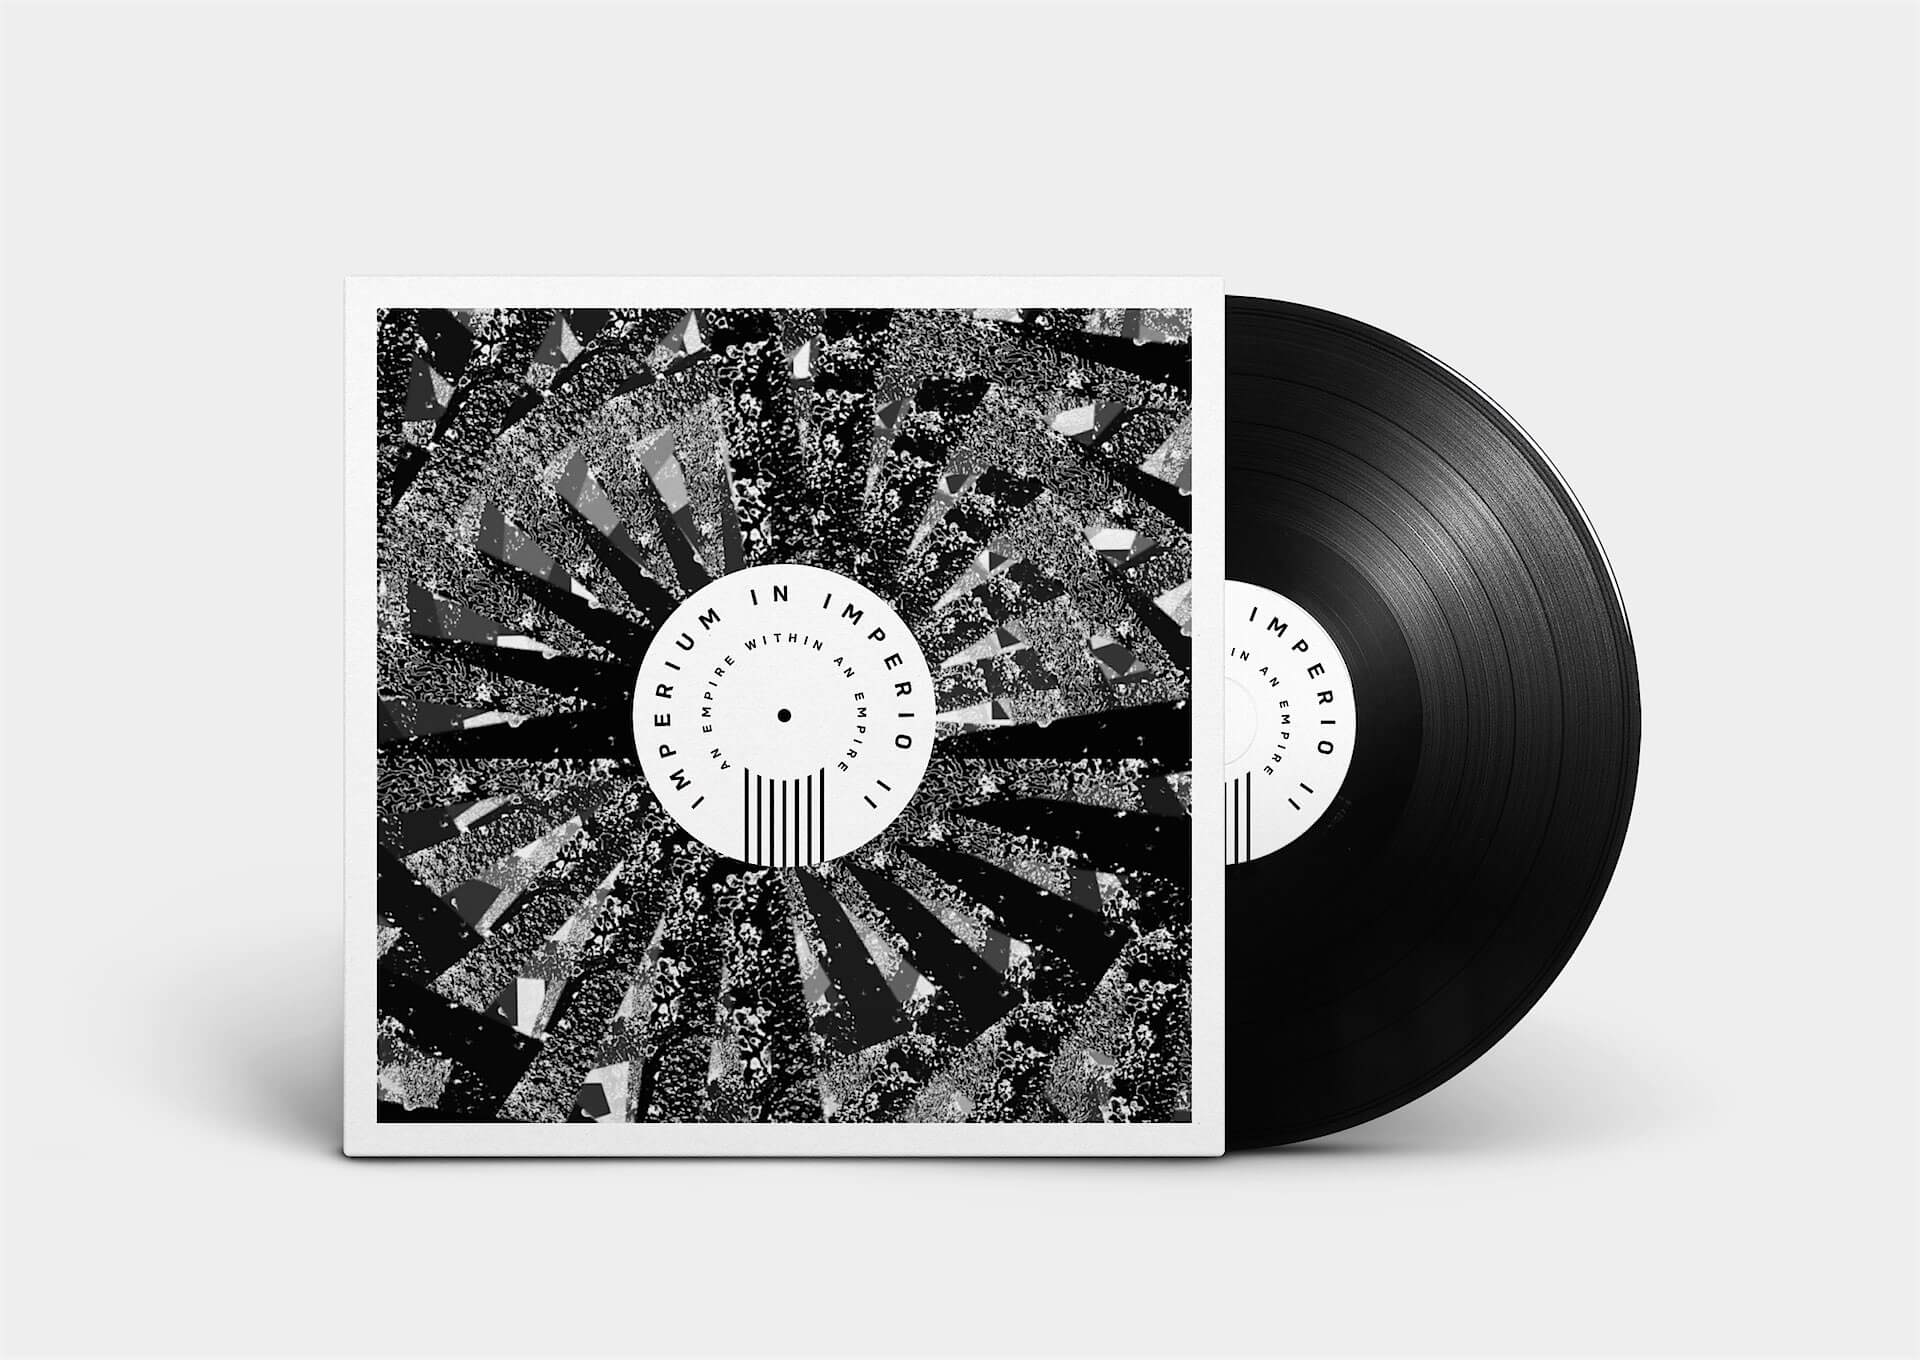 Vinyl-Record-PSD-MockUp-resized